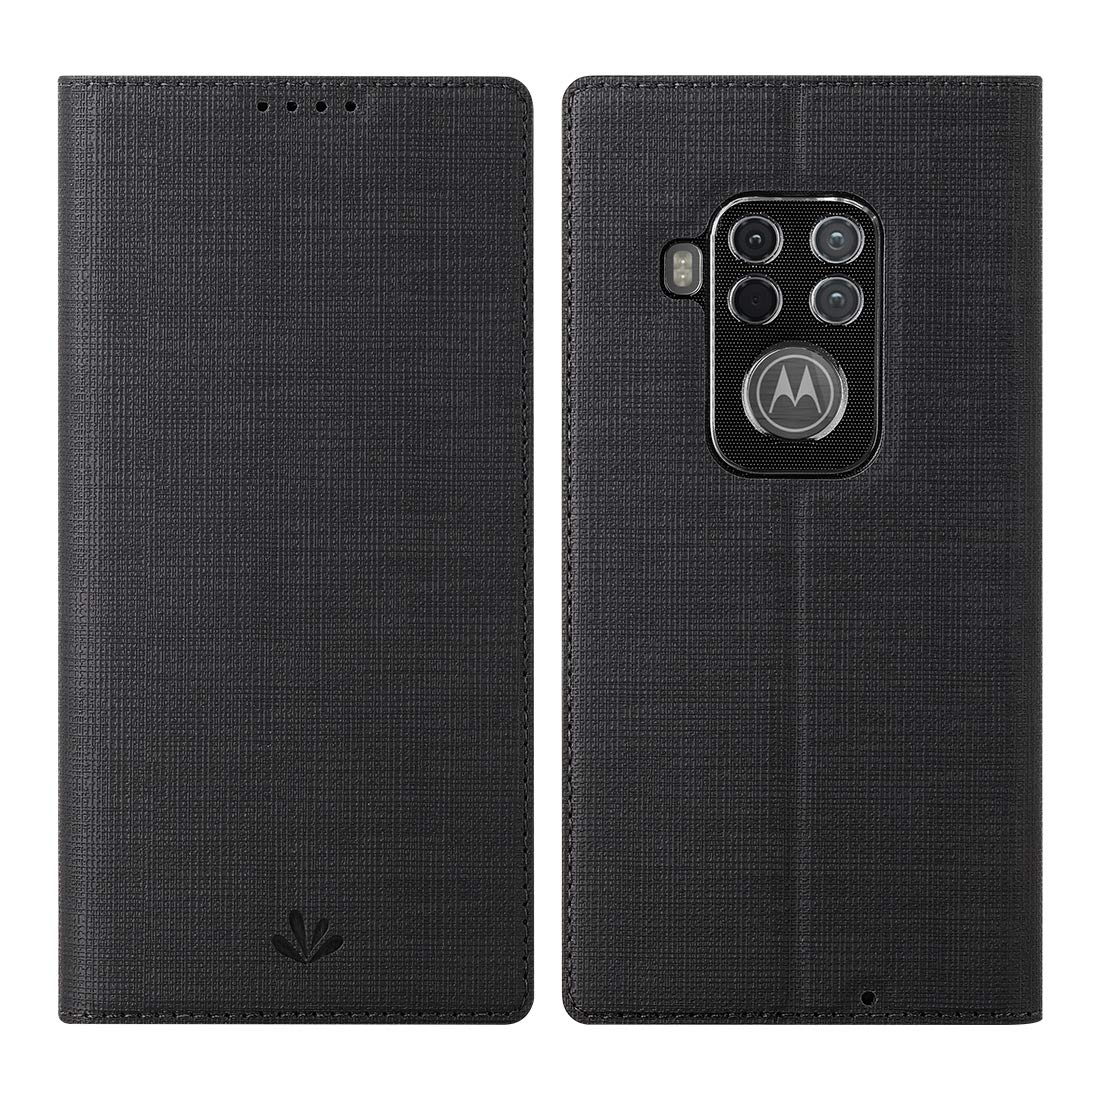 funda flip cover para motorola one zoom, negra